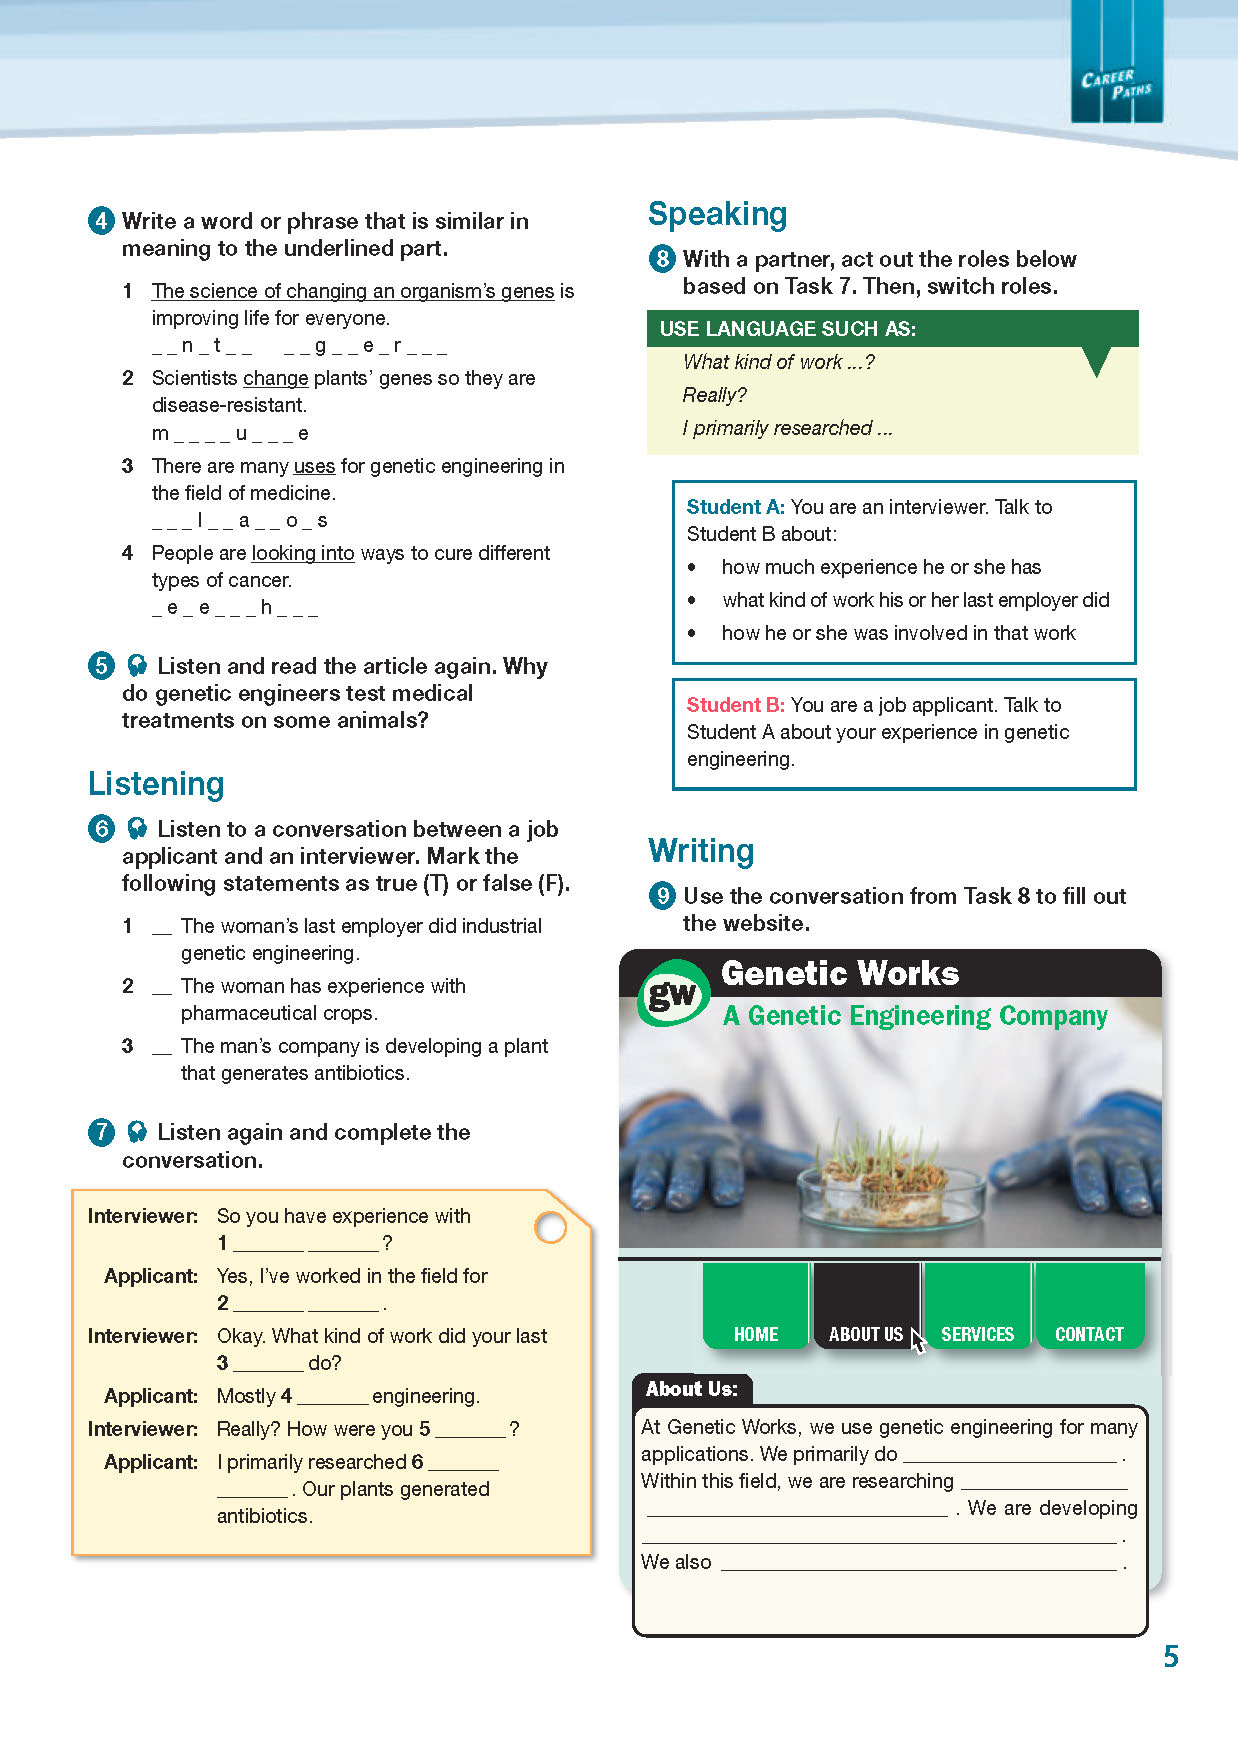 ESP English for Specific Purposes - Career Paths: Genetic Engineering - Sample Page 2